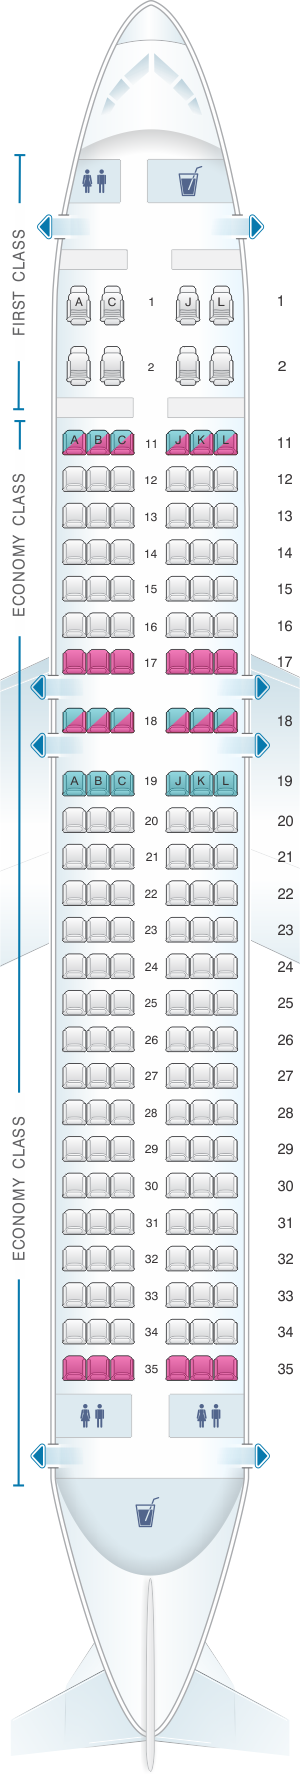 Seat map for Air China Airbus A320 200neo